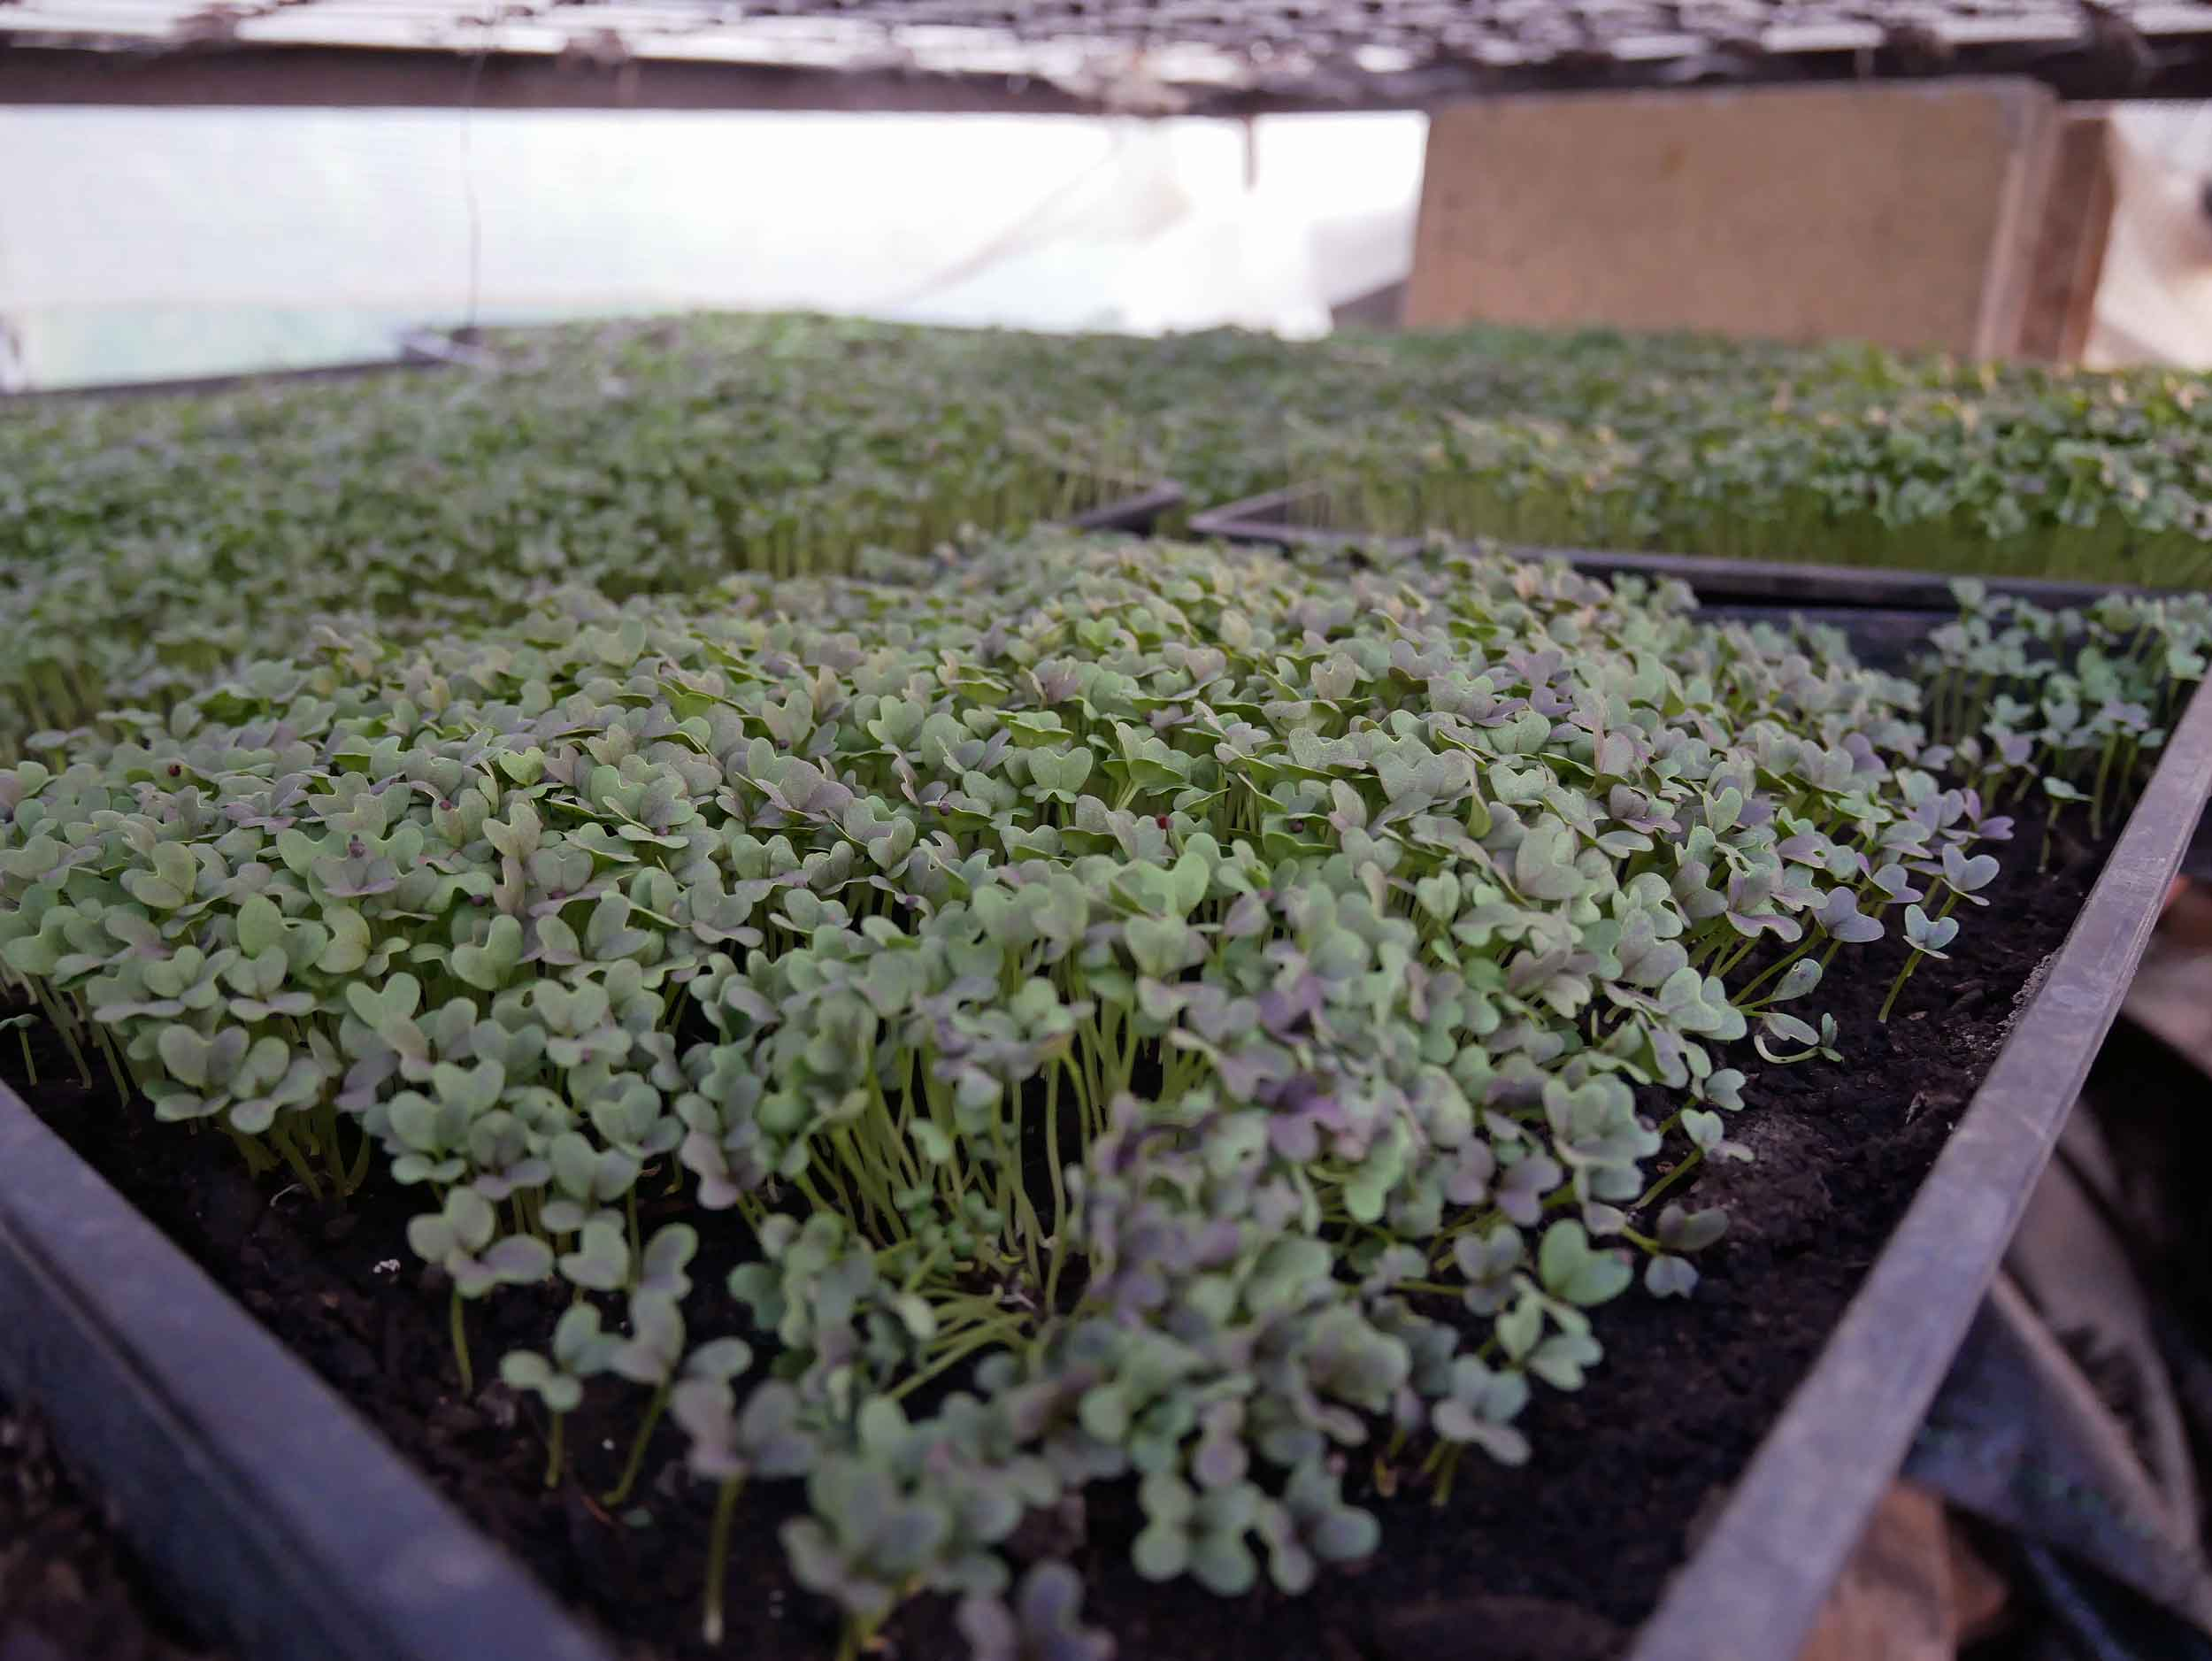 Micro greens are big business in Golden Bay, easier for cafes and restaurants to garnish plates (also, tasty!).